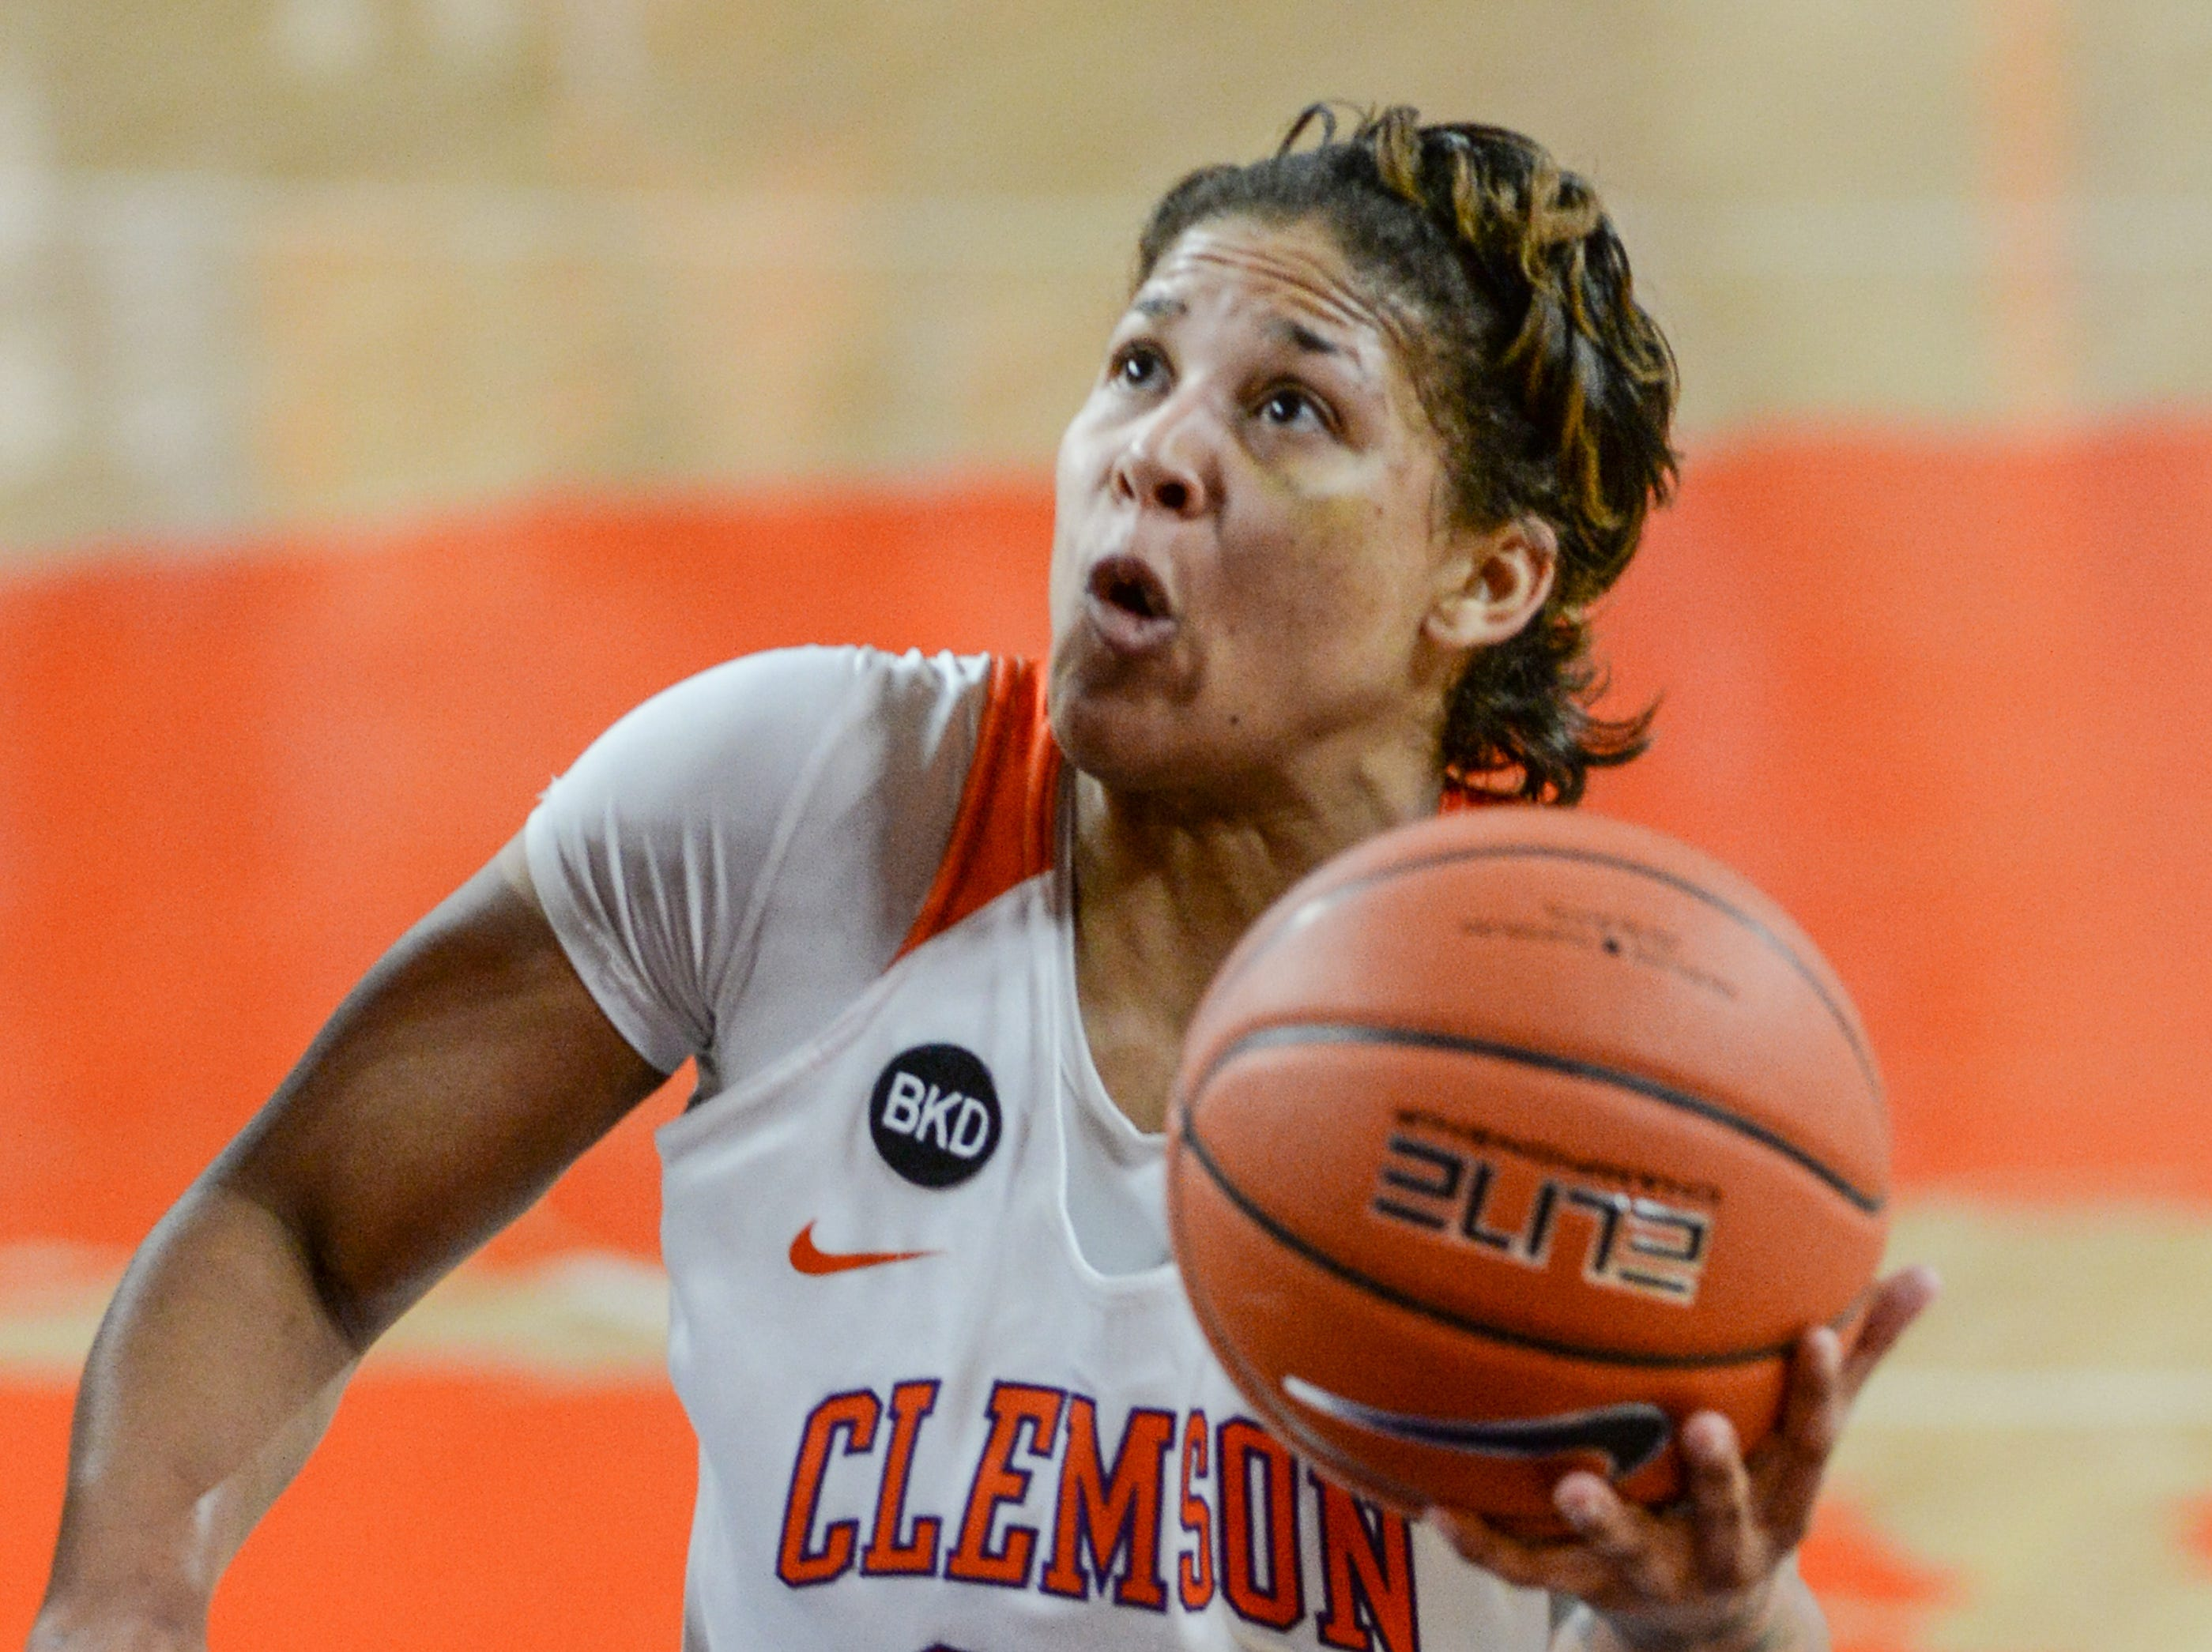 Clemson guard Simone Westbrook(20) shoots during the second quarter of the game with Georgia Tech at Littlejohn Coliseum in Clemson Thursday, January 17, 2019.